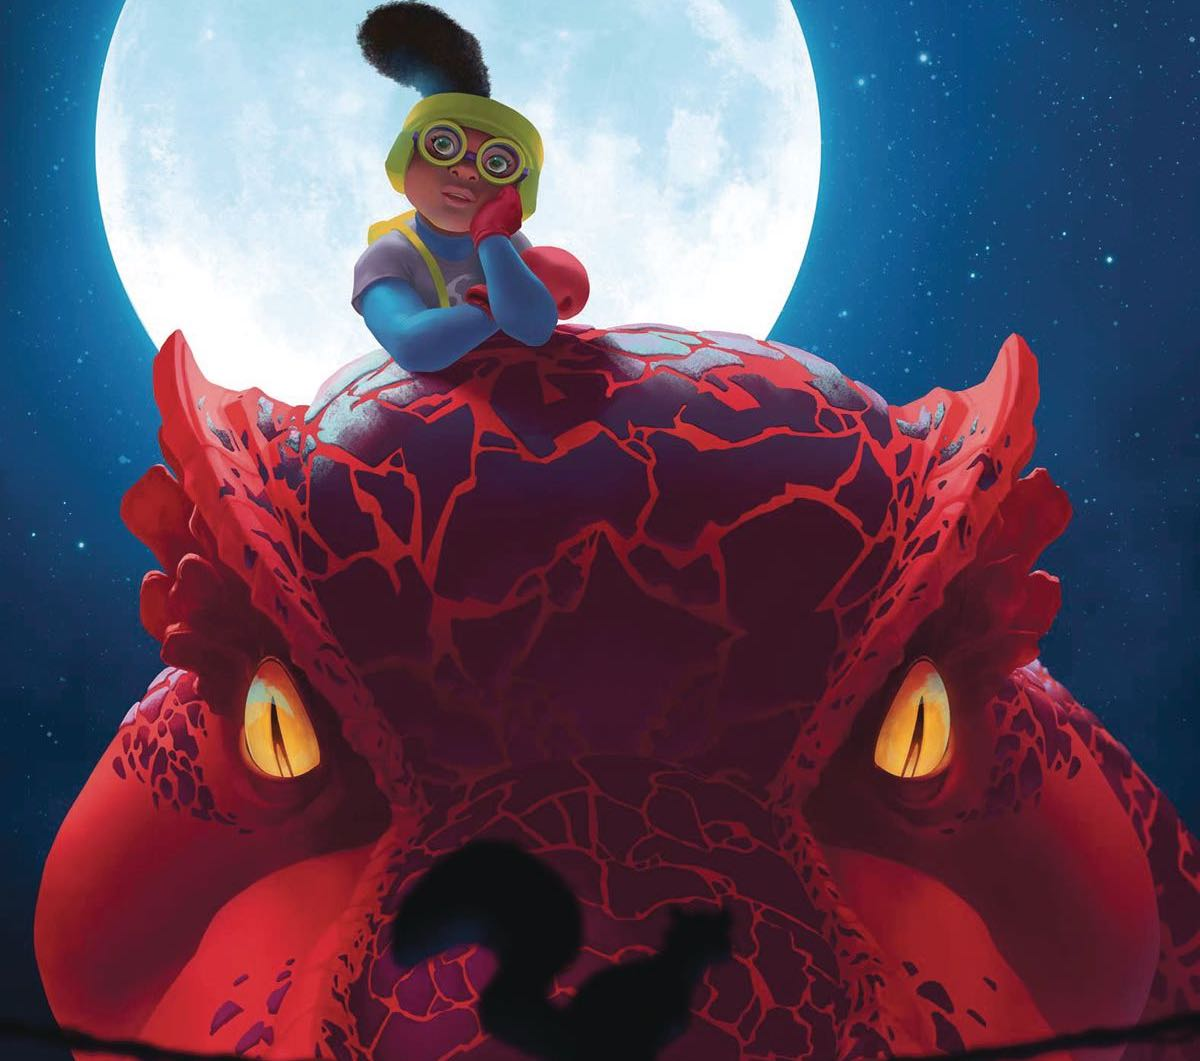 Moon Girl and Devil Dinosaur Vol. 8: Yancy Street Legends Review